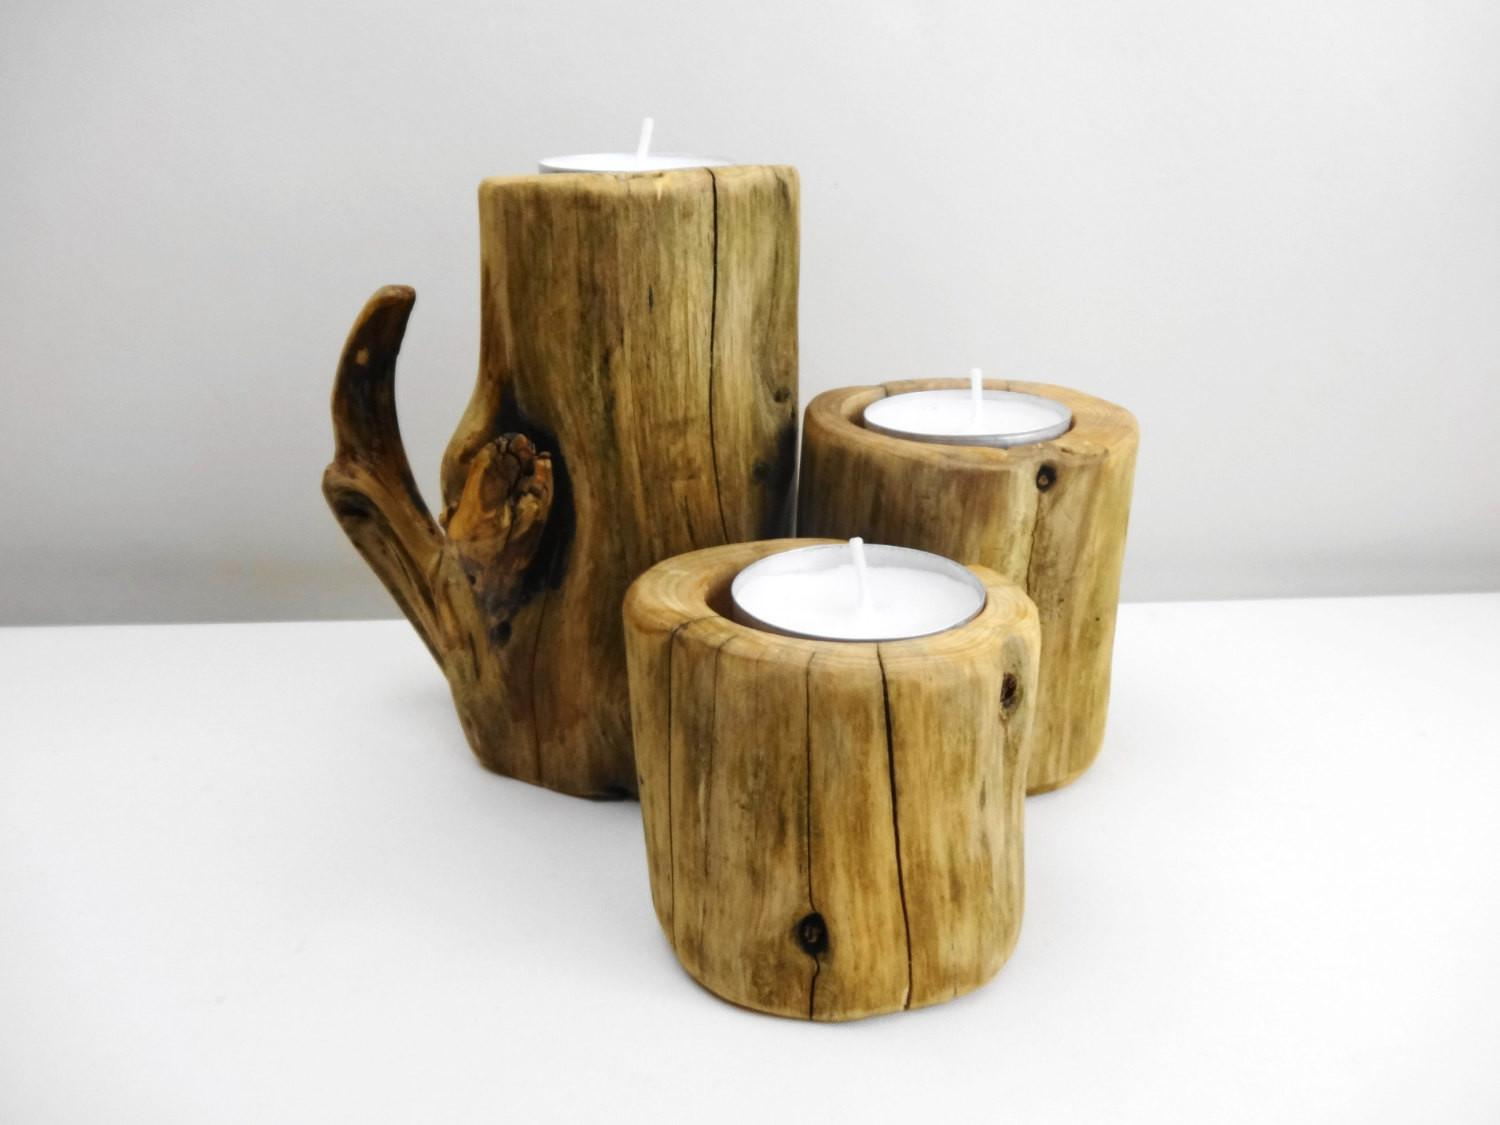 Wood Candle Holders Wooden Holder Branch